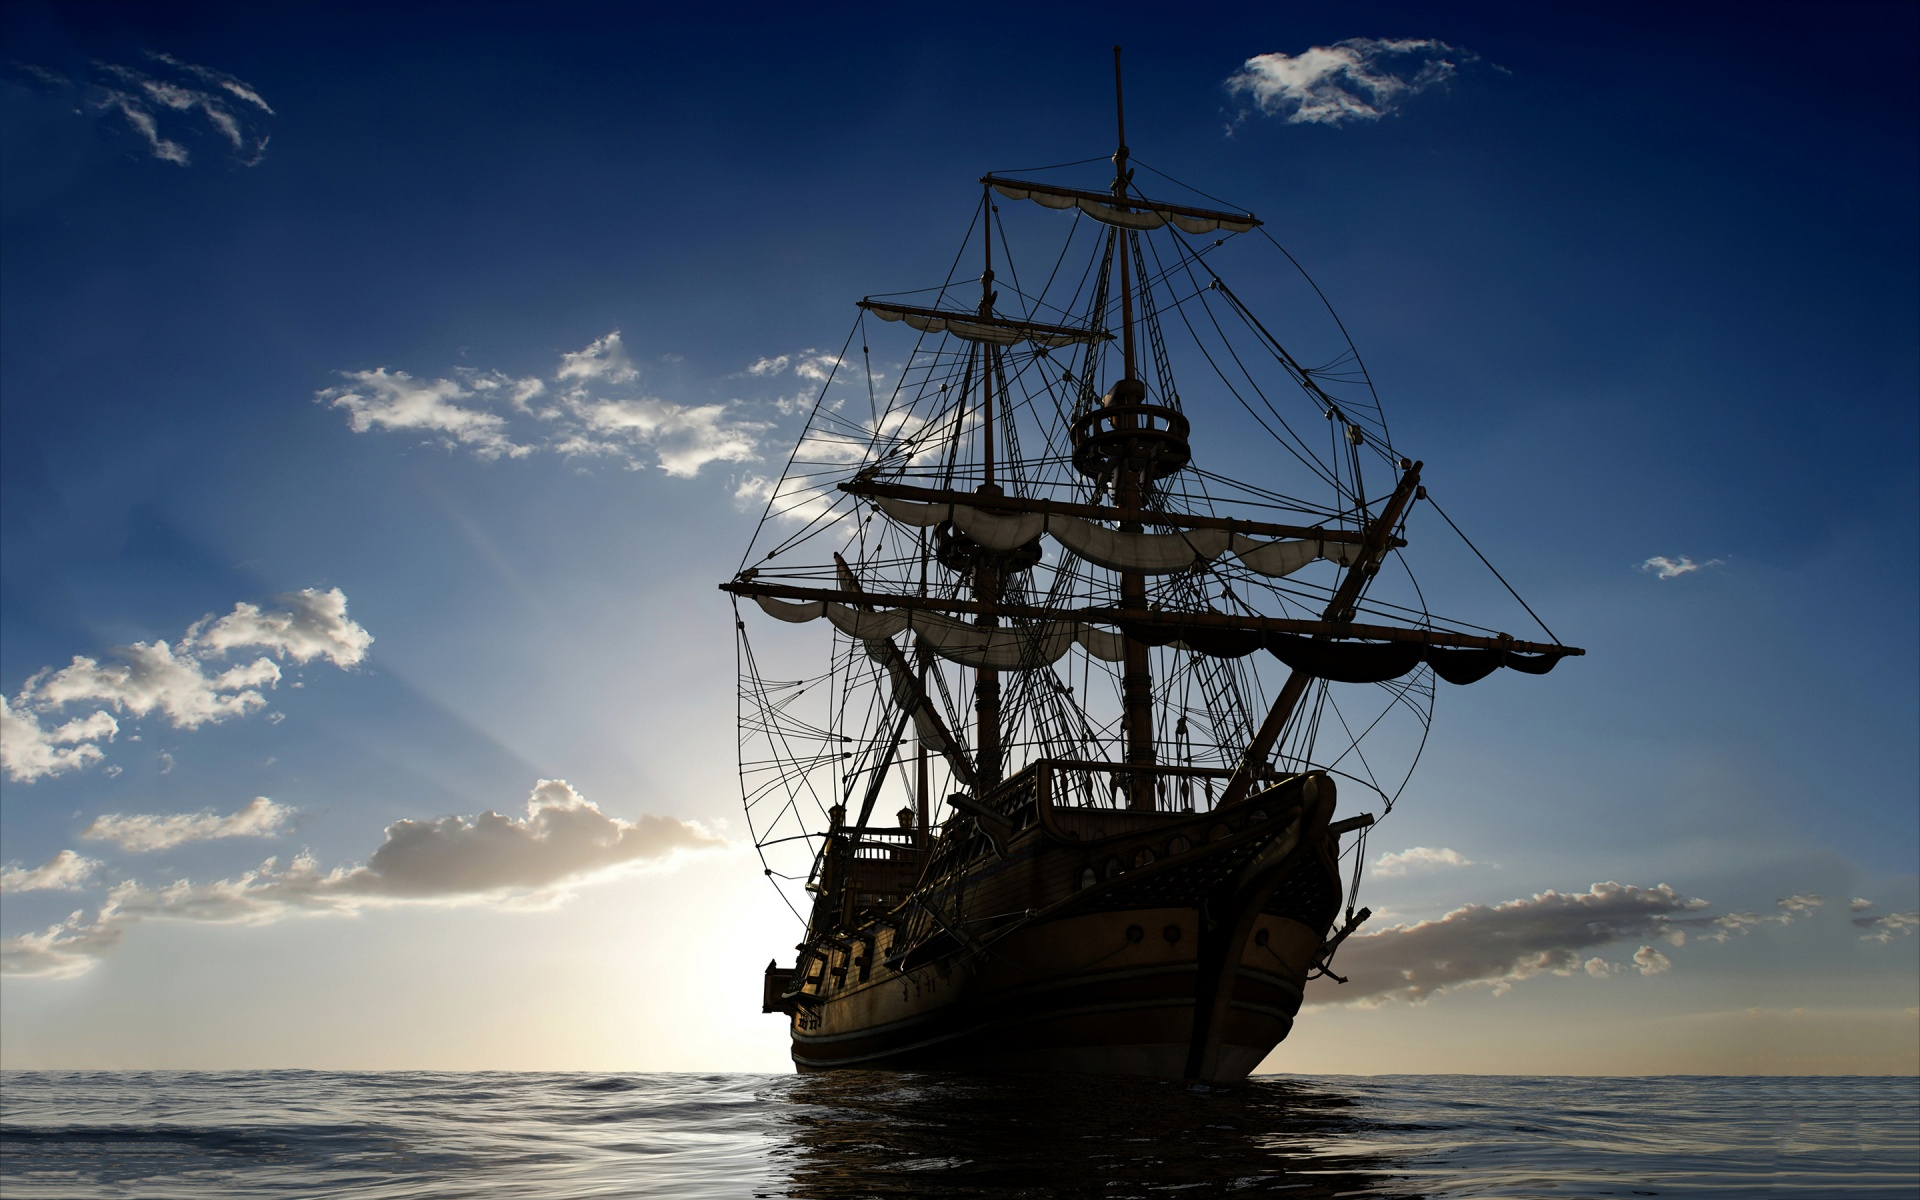 Download free HD Sailing Ship Ocean Wallpaper, image